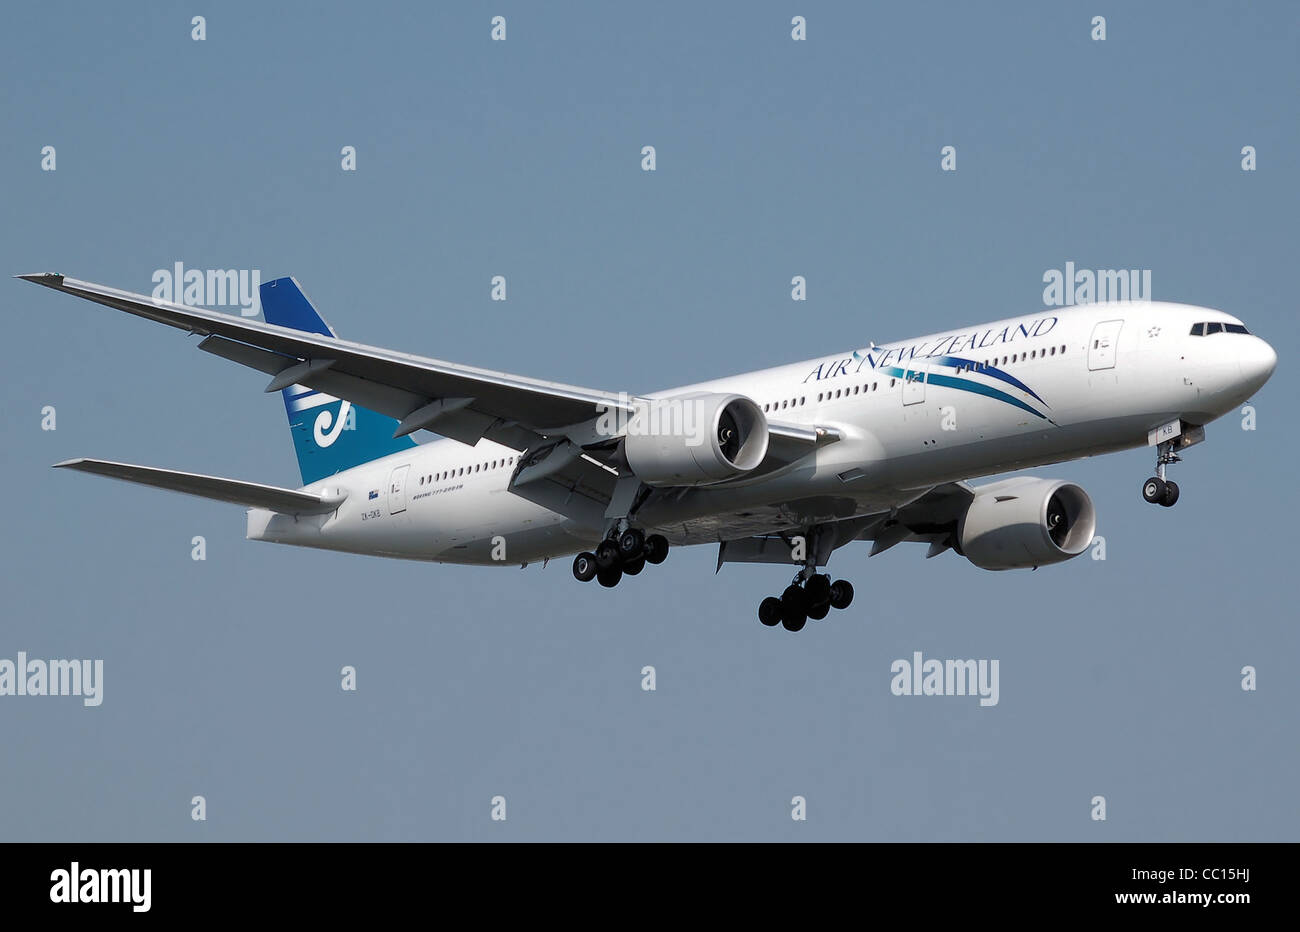 Air New Zealand Boeing 777-200ER (ZK-OKB) lands at London Heathrow Airport. - Stock Image